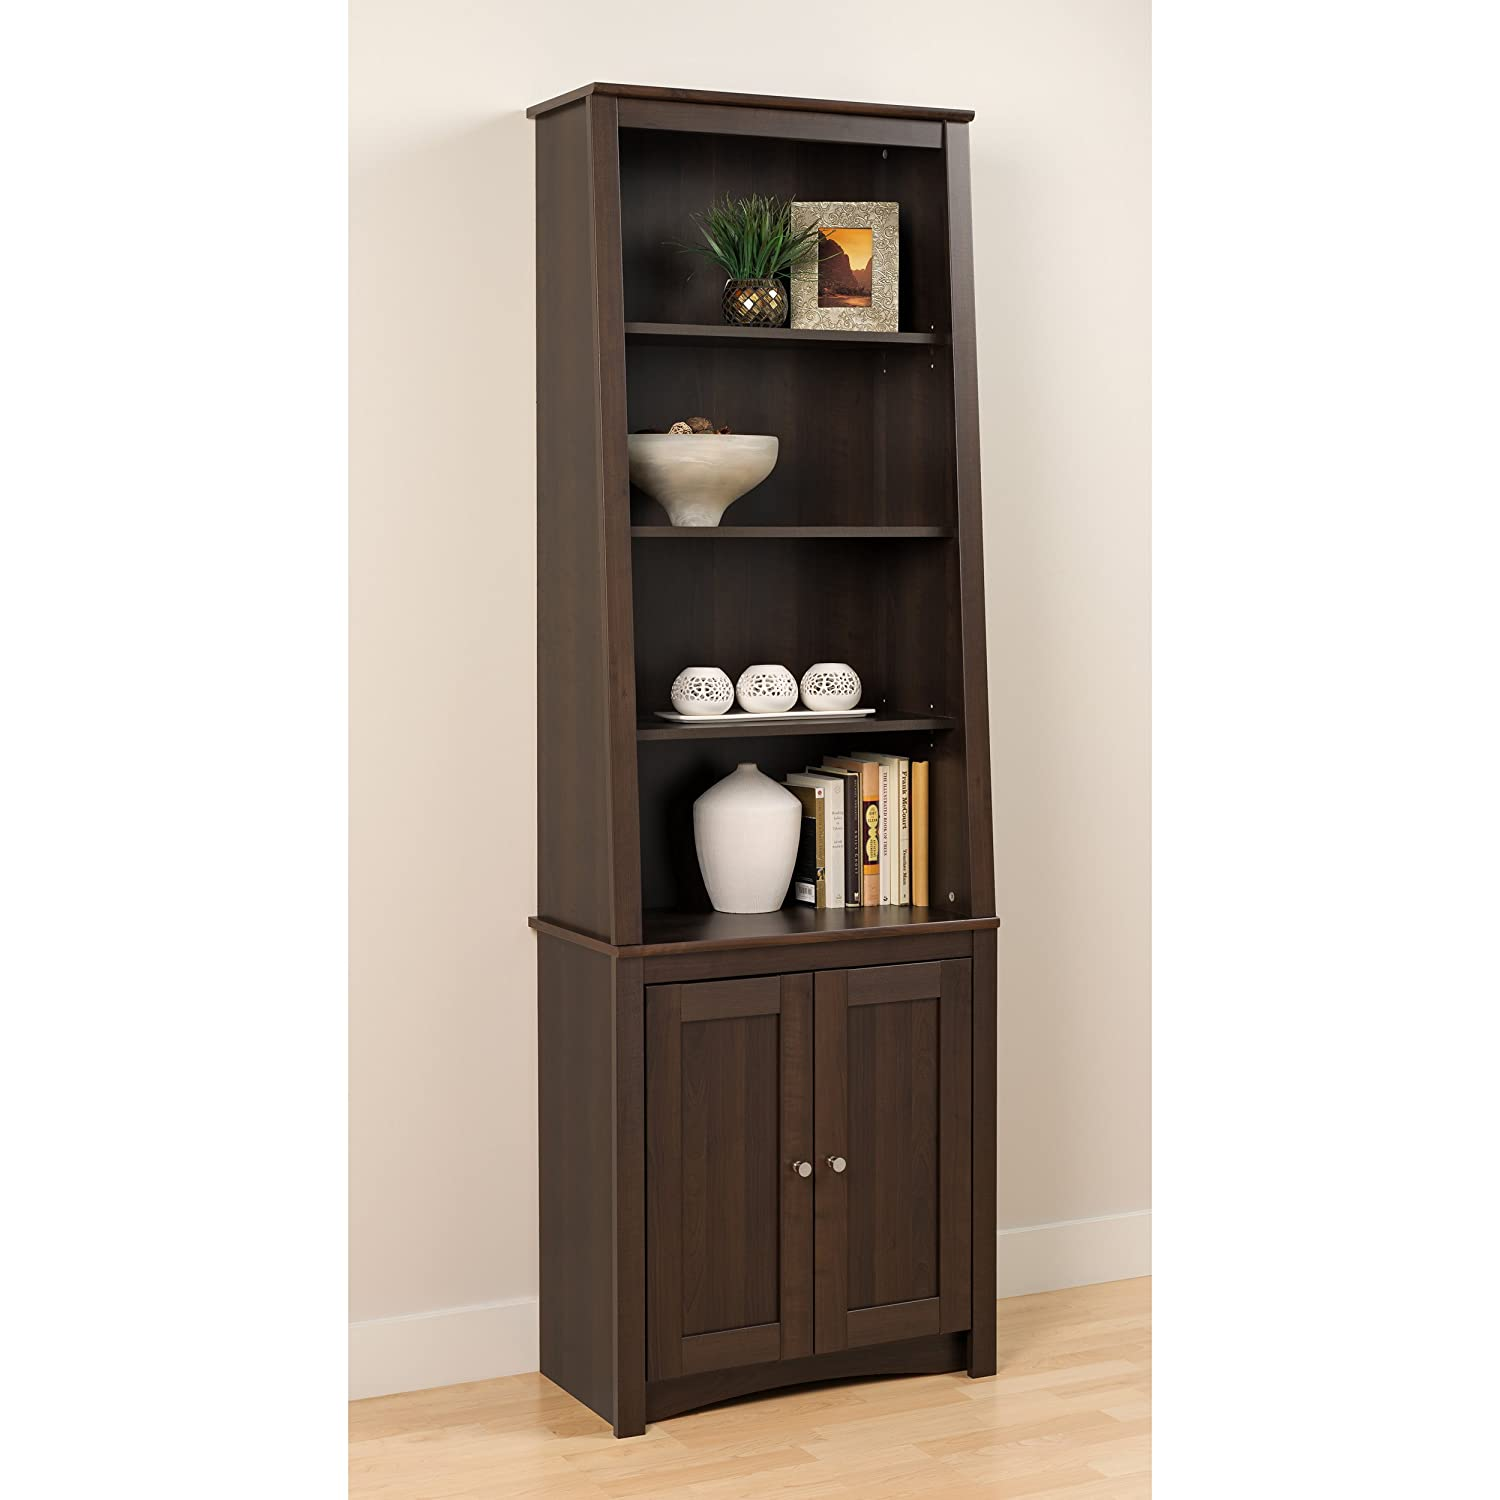 Amazon Espresso Tall Slant Back Bookcase with 2 Shaker Doors